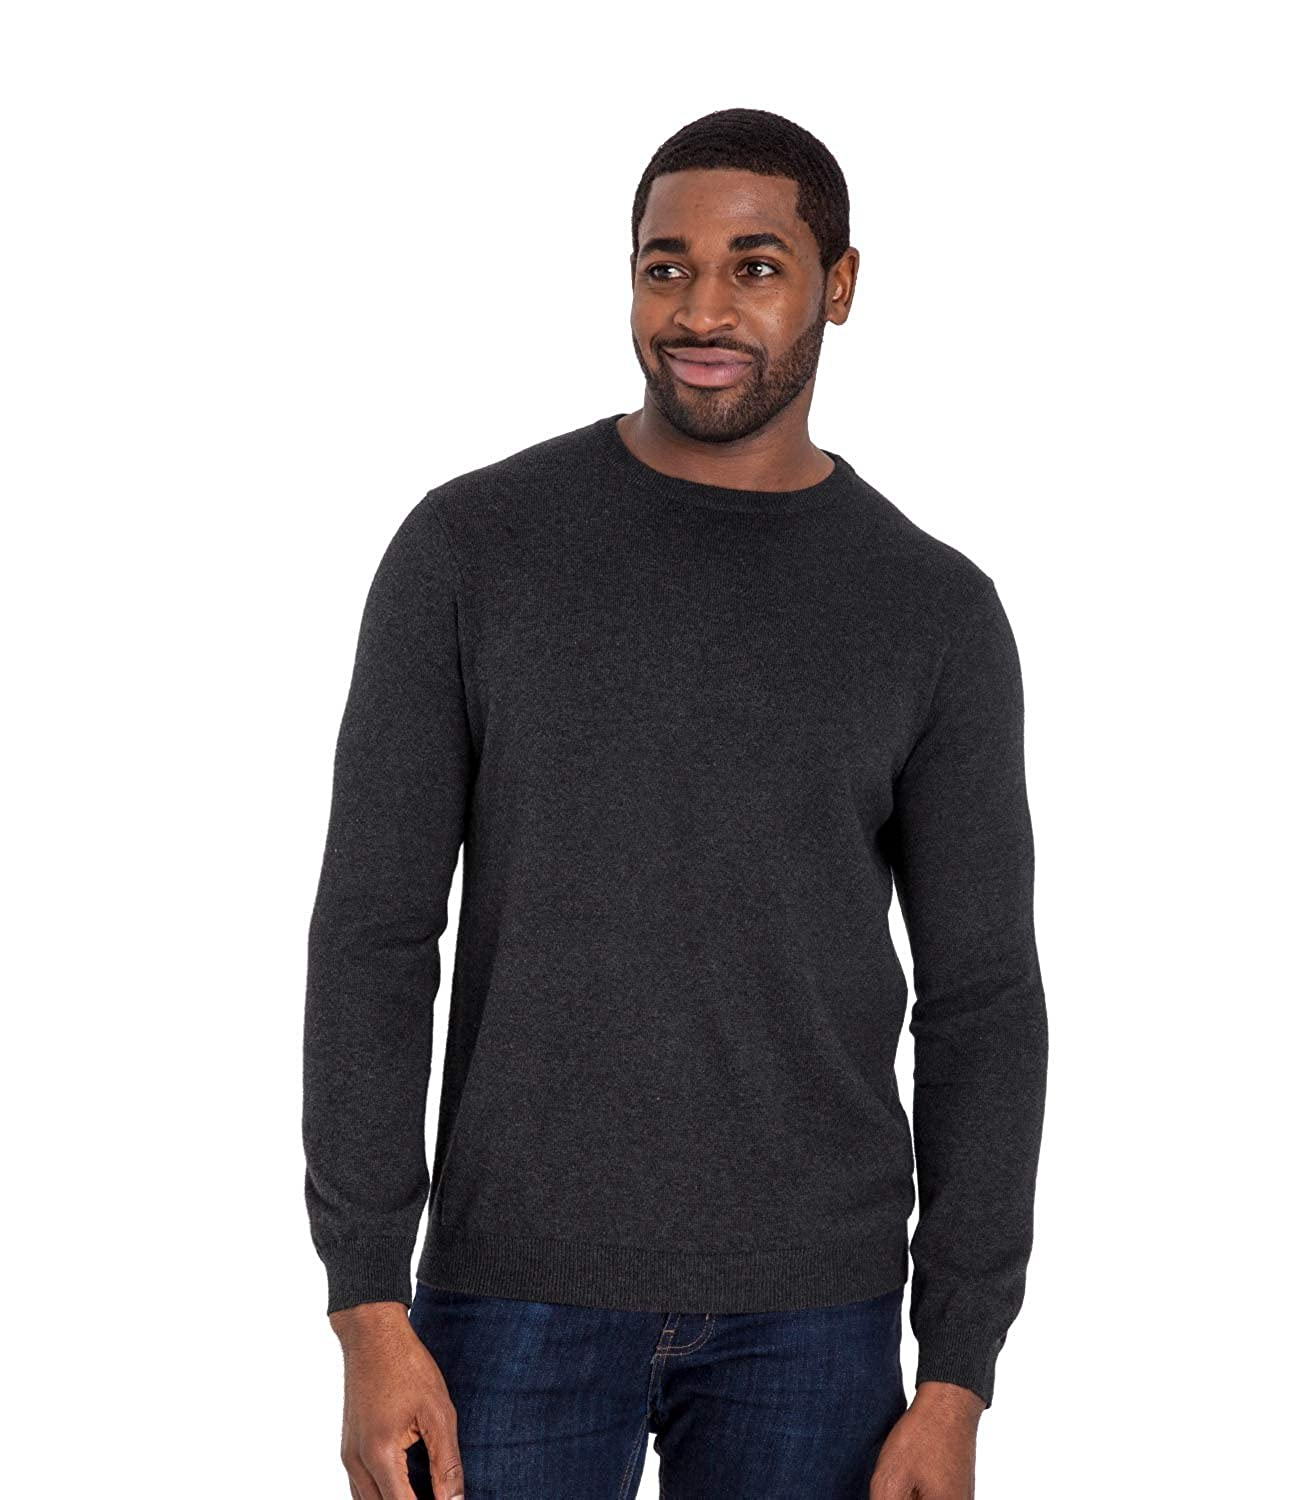 c394debb6f Amazon.com  WoolOvers Mens Cashmere and Cotton Crew Neck Sweater Charcoal